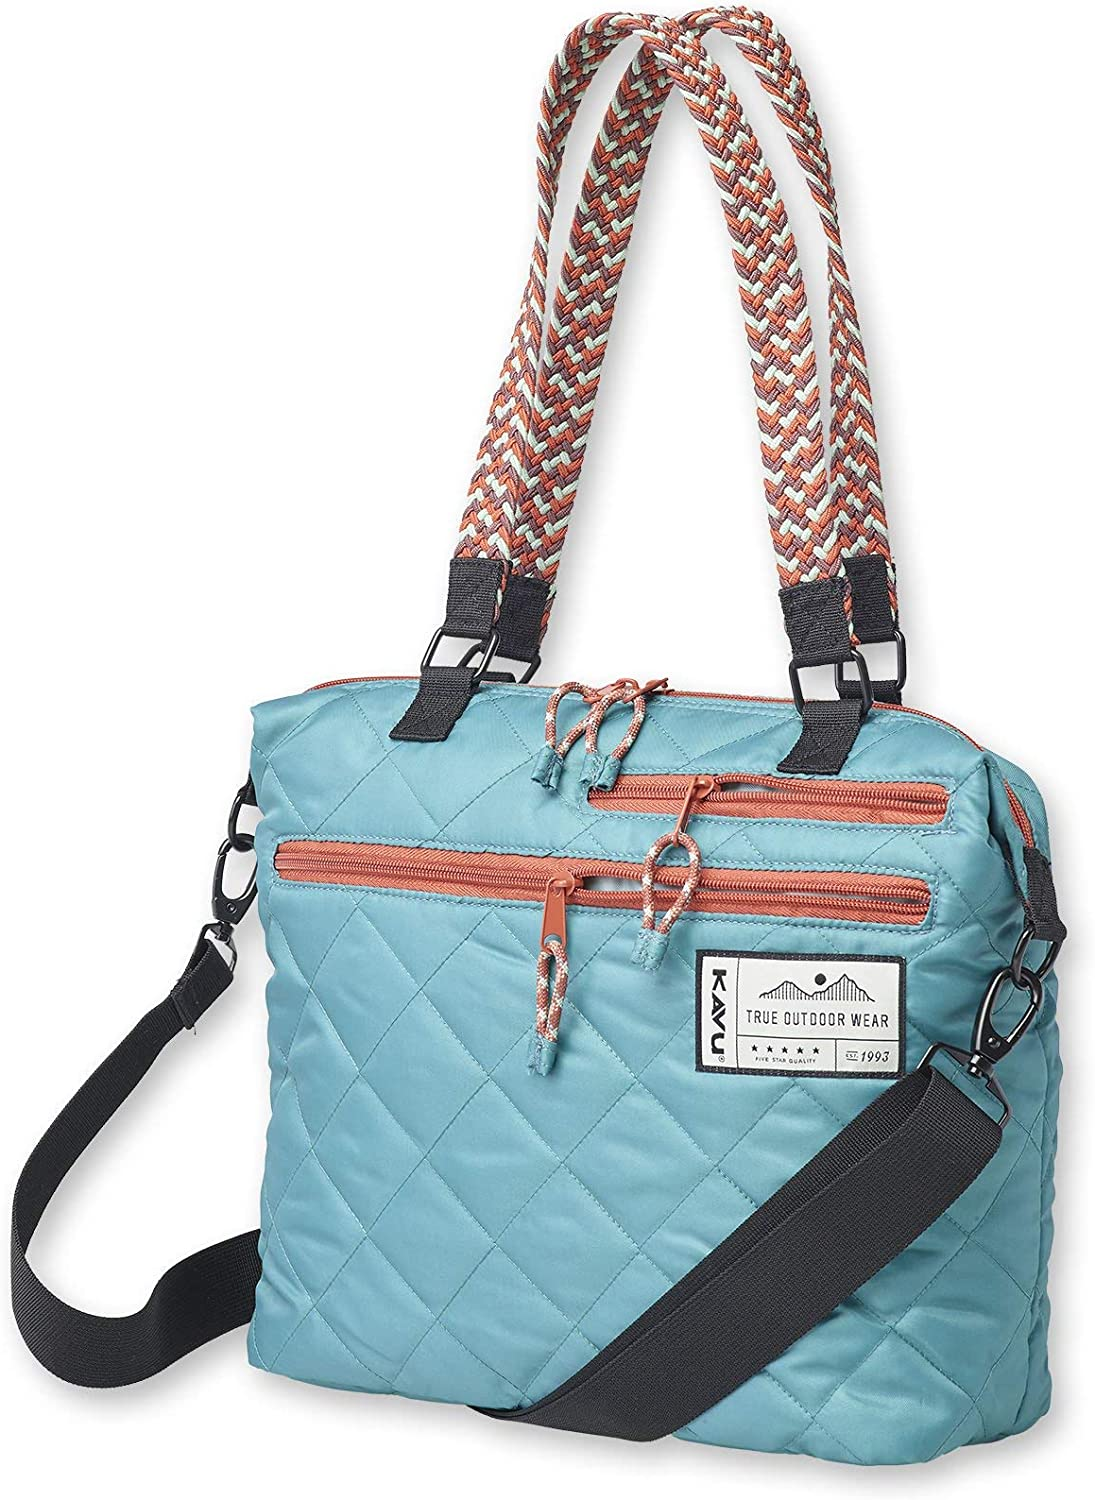 KAVU Puffentote Bag Crossbody Sling Travel Quilted Tote